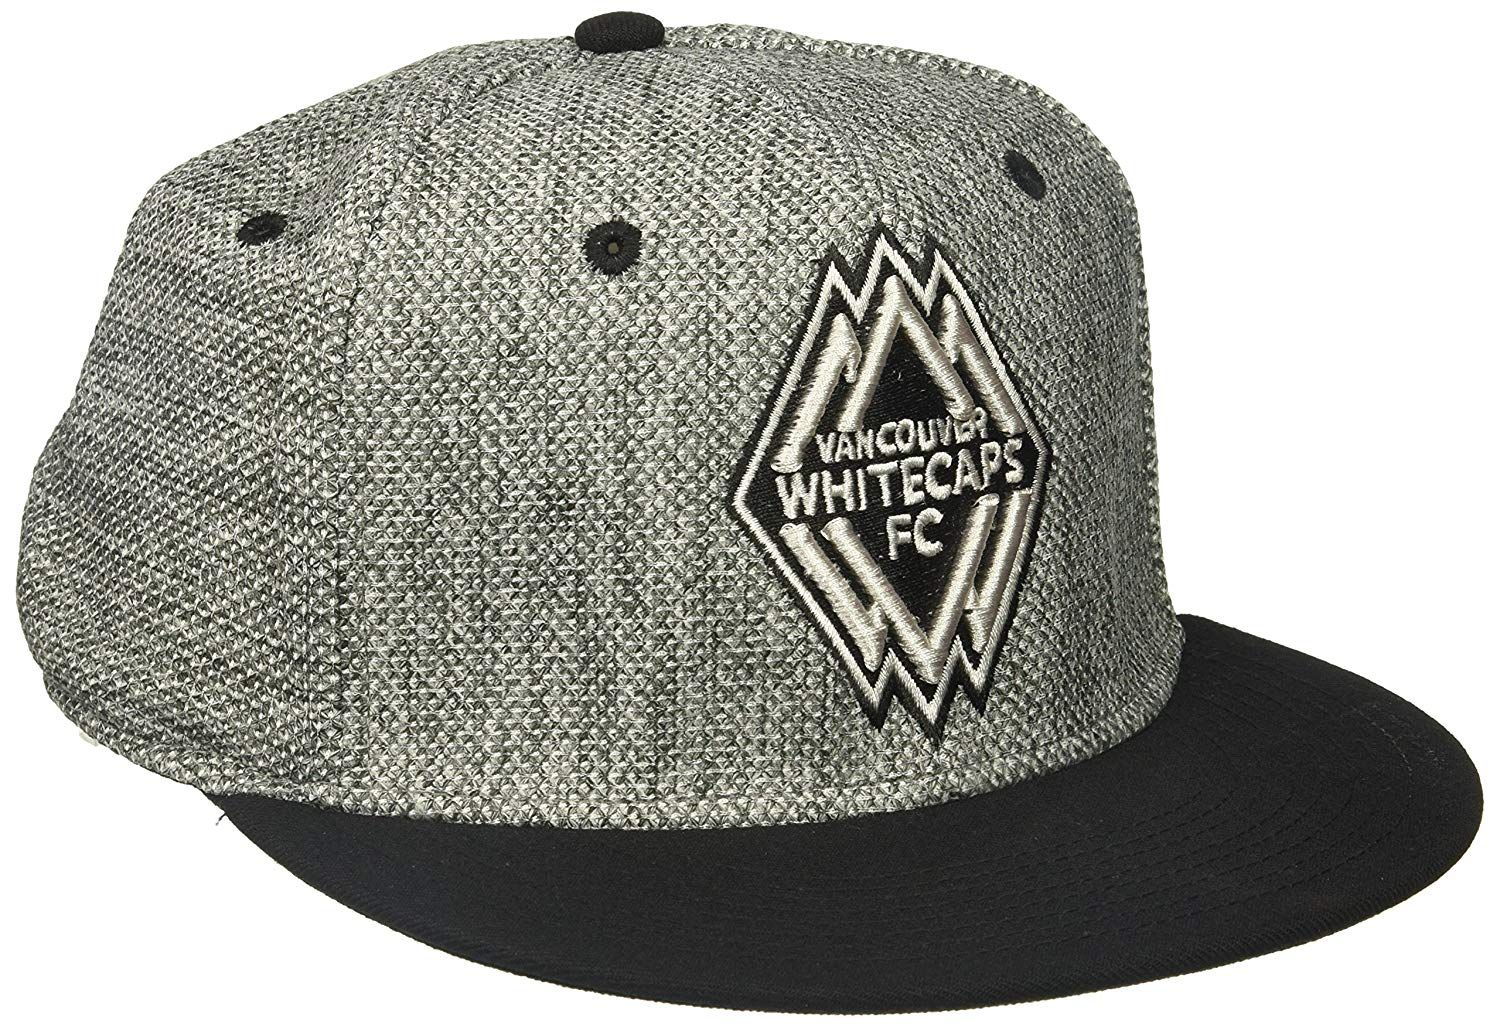 28e46a3c68213 adidas MLS Vancouver Whitecaps Men s Heathered Gray Fabric Flat Visor Flex  Hat